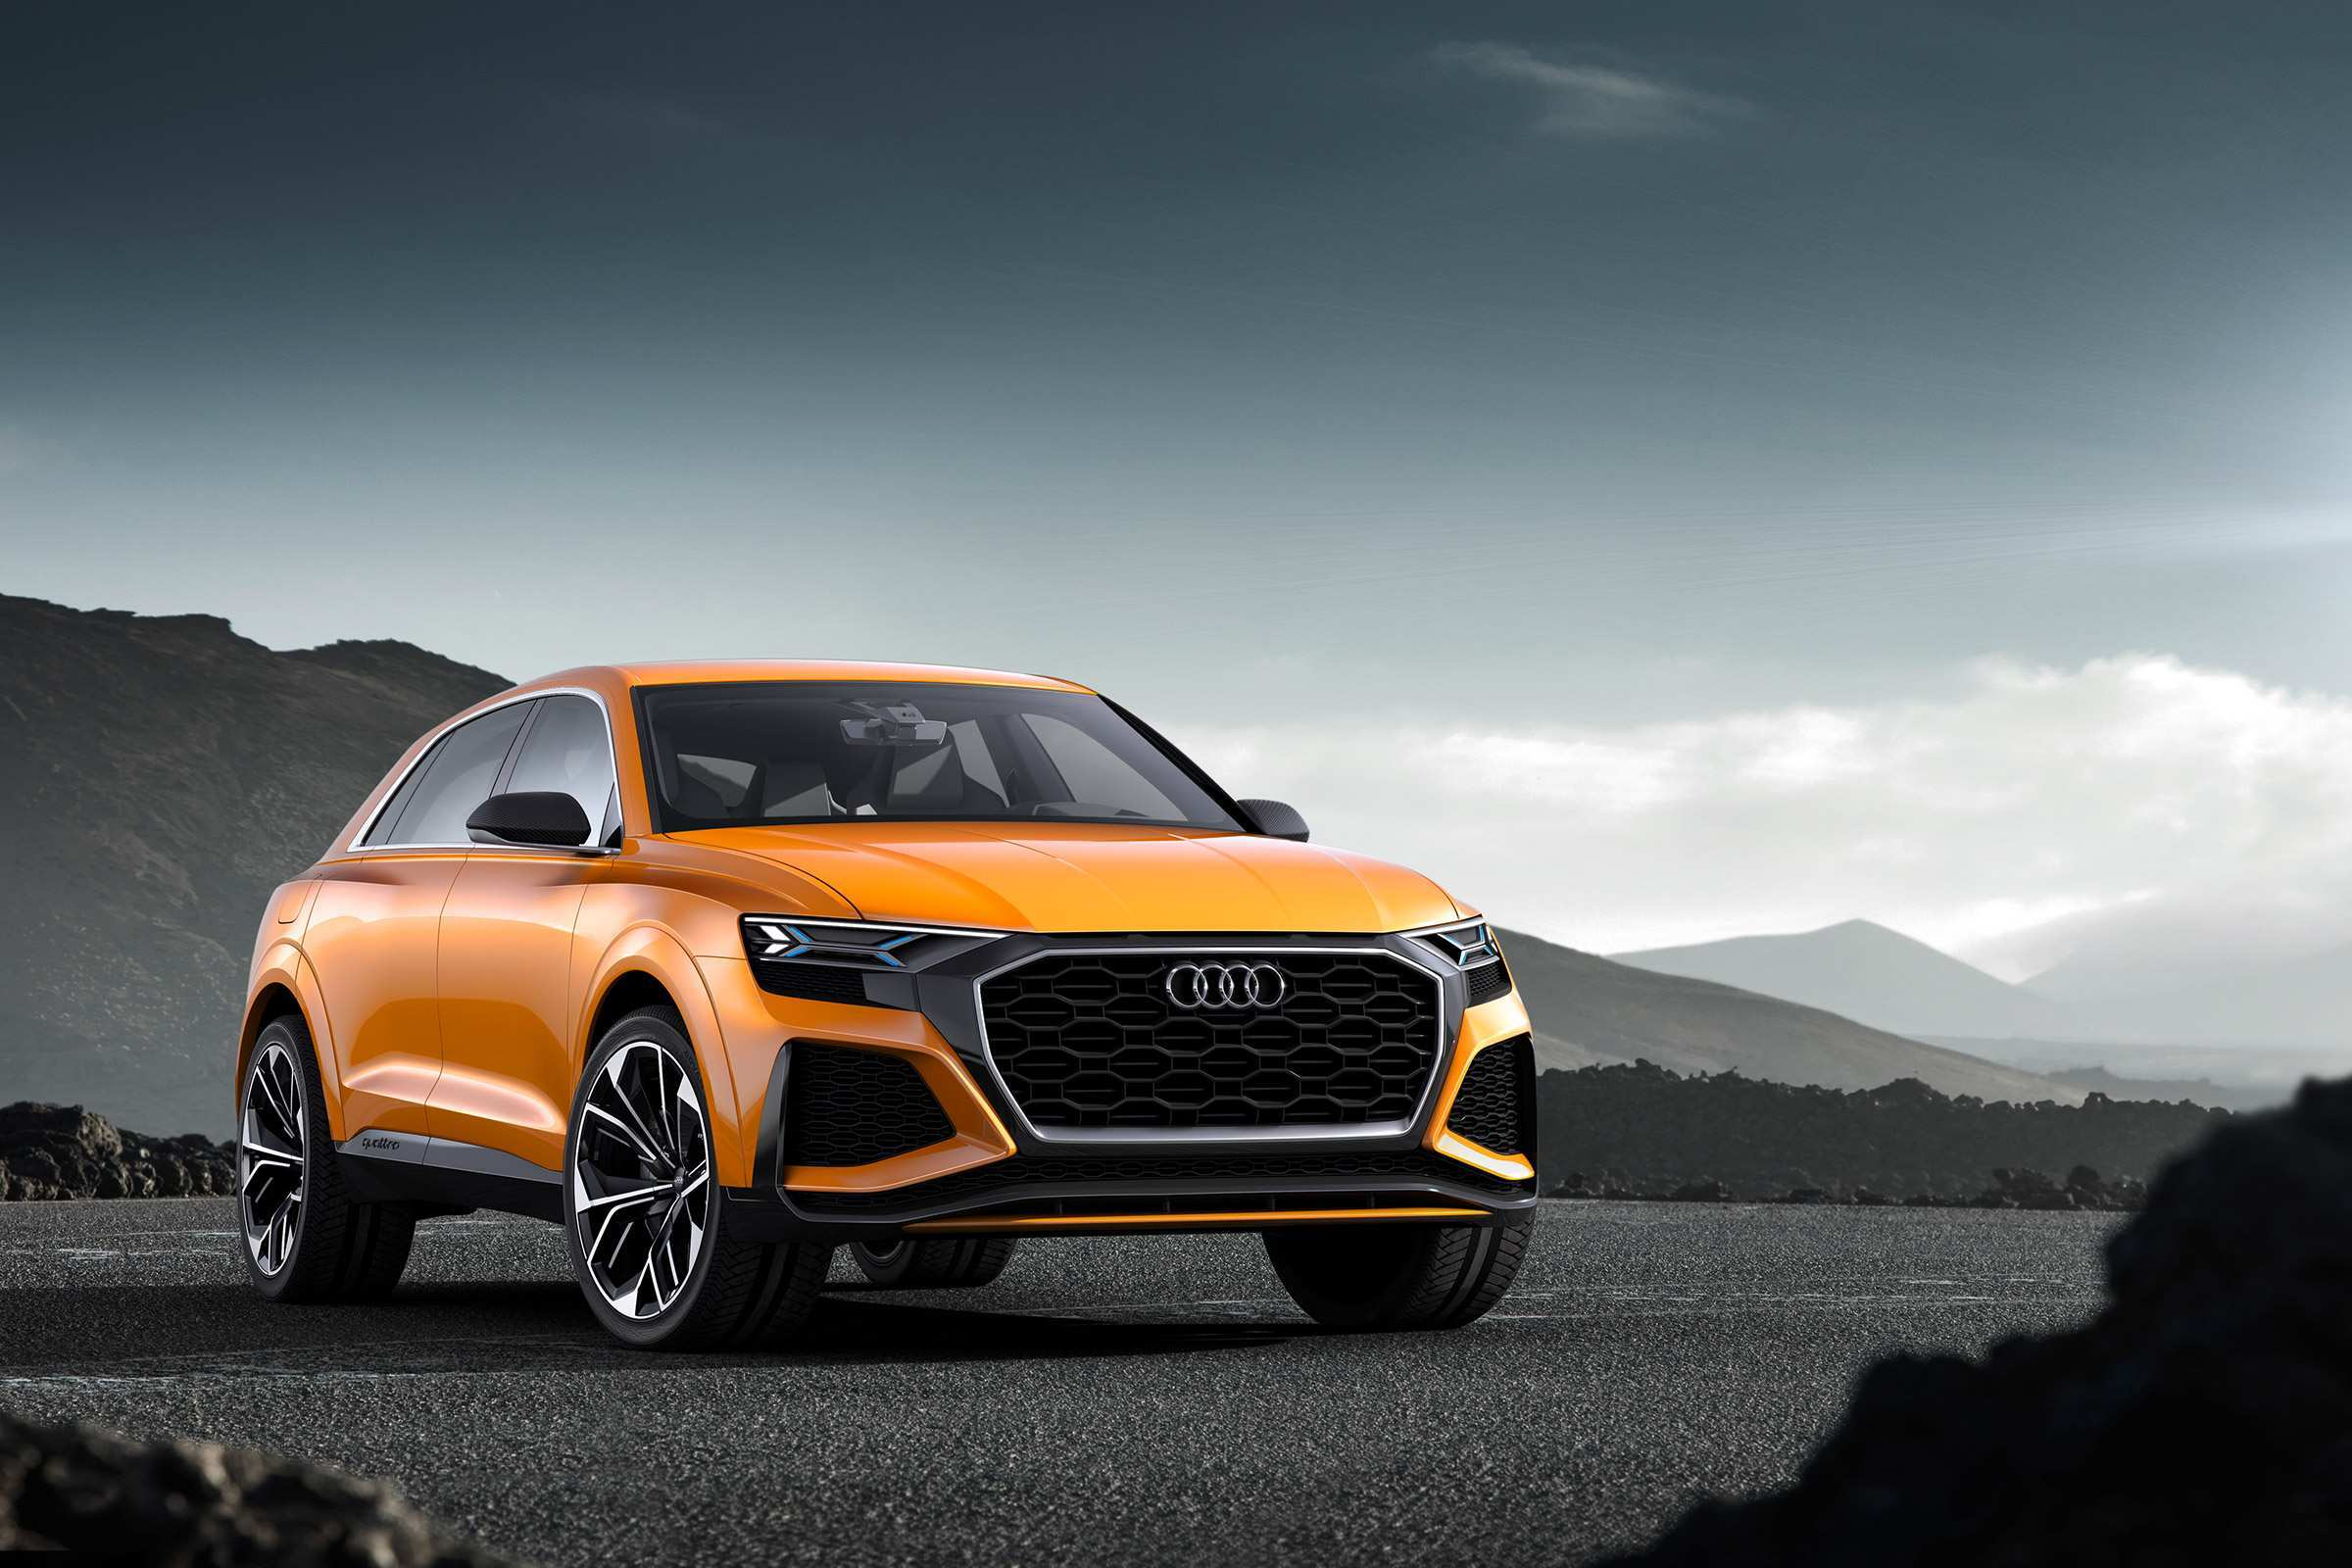 58 Concept of Audi Hybrid Range 2020 Price and Review for Audi Hybrid Range 2020